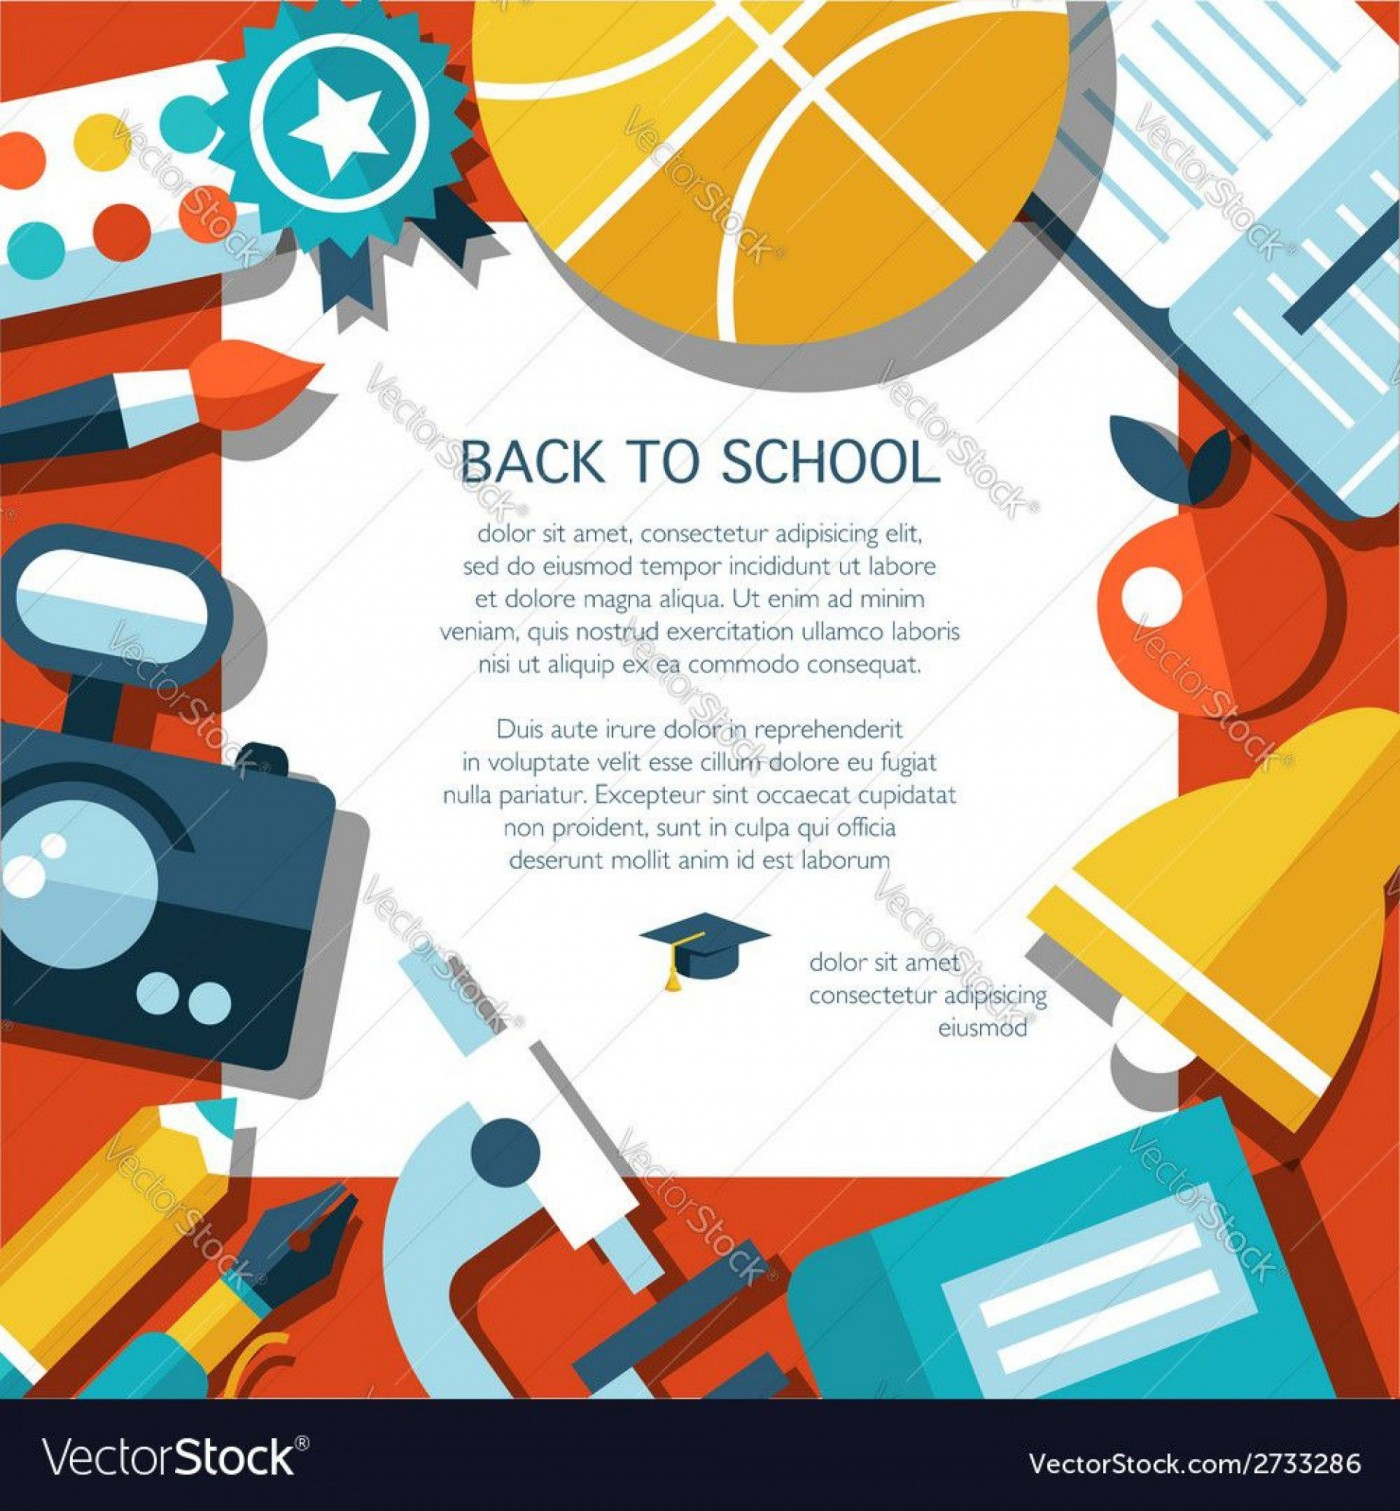 002 Impressive Free Back To School Flyer Template Word Picture 1400